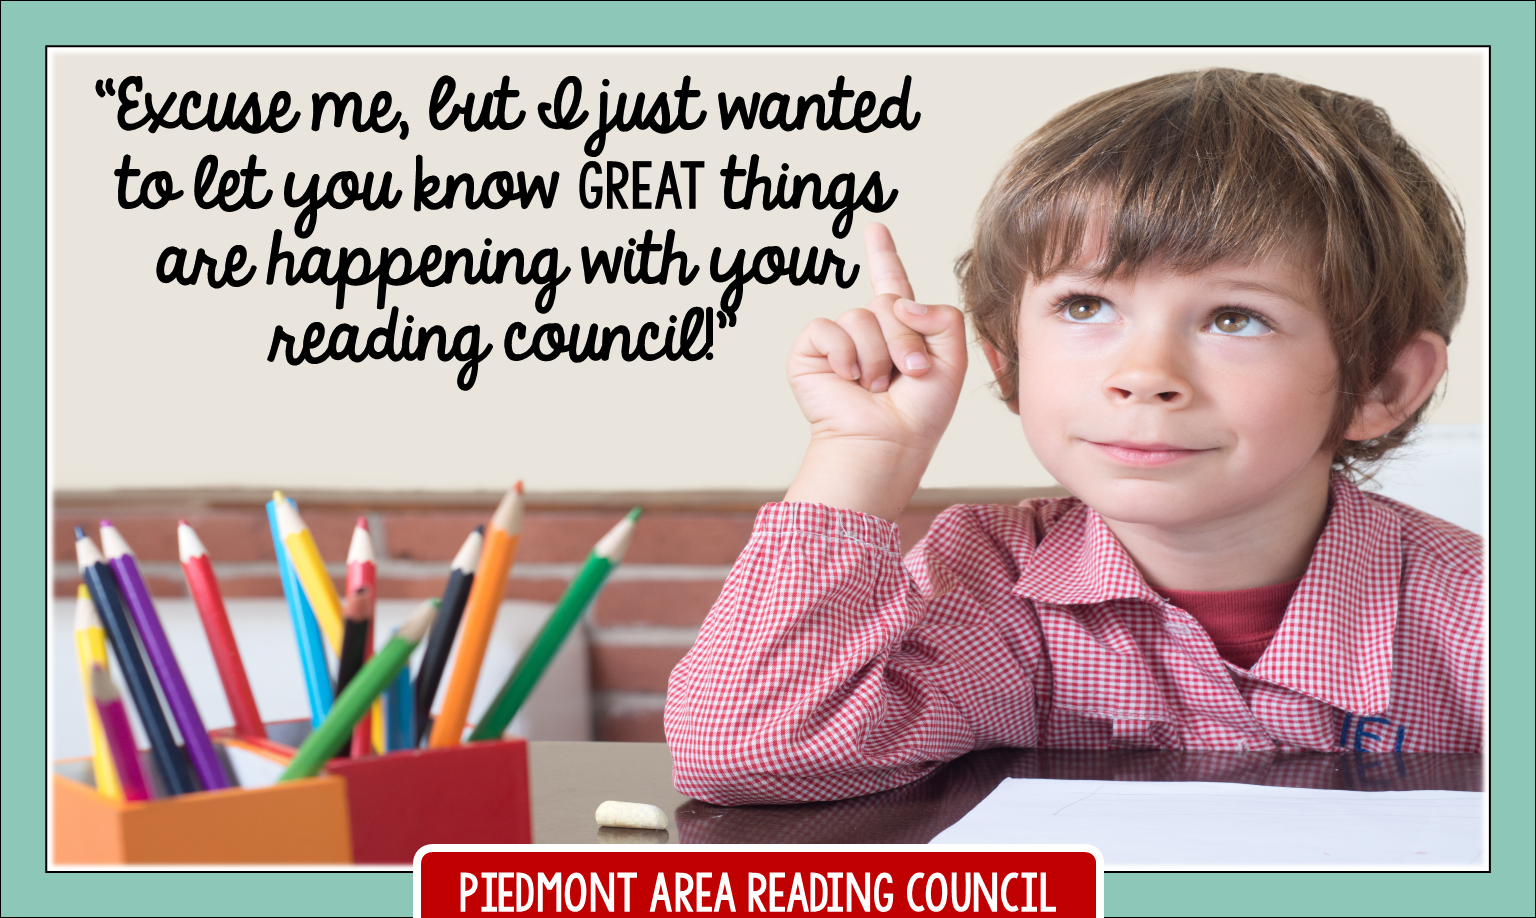 Stop by to learn how you can get involved with the Piedmont Area Reading Council